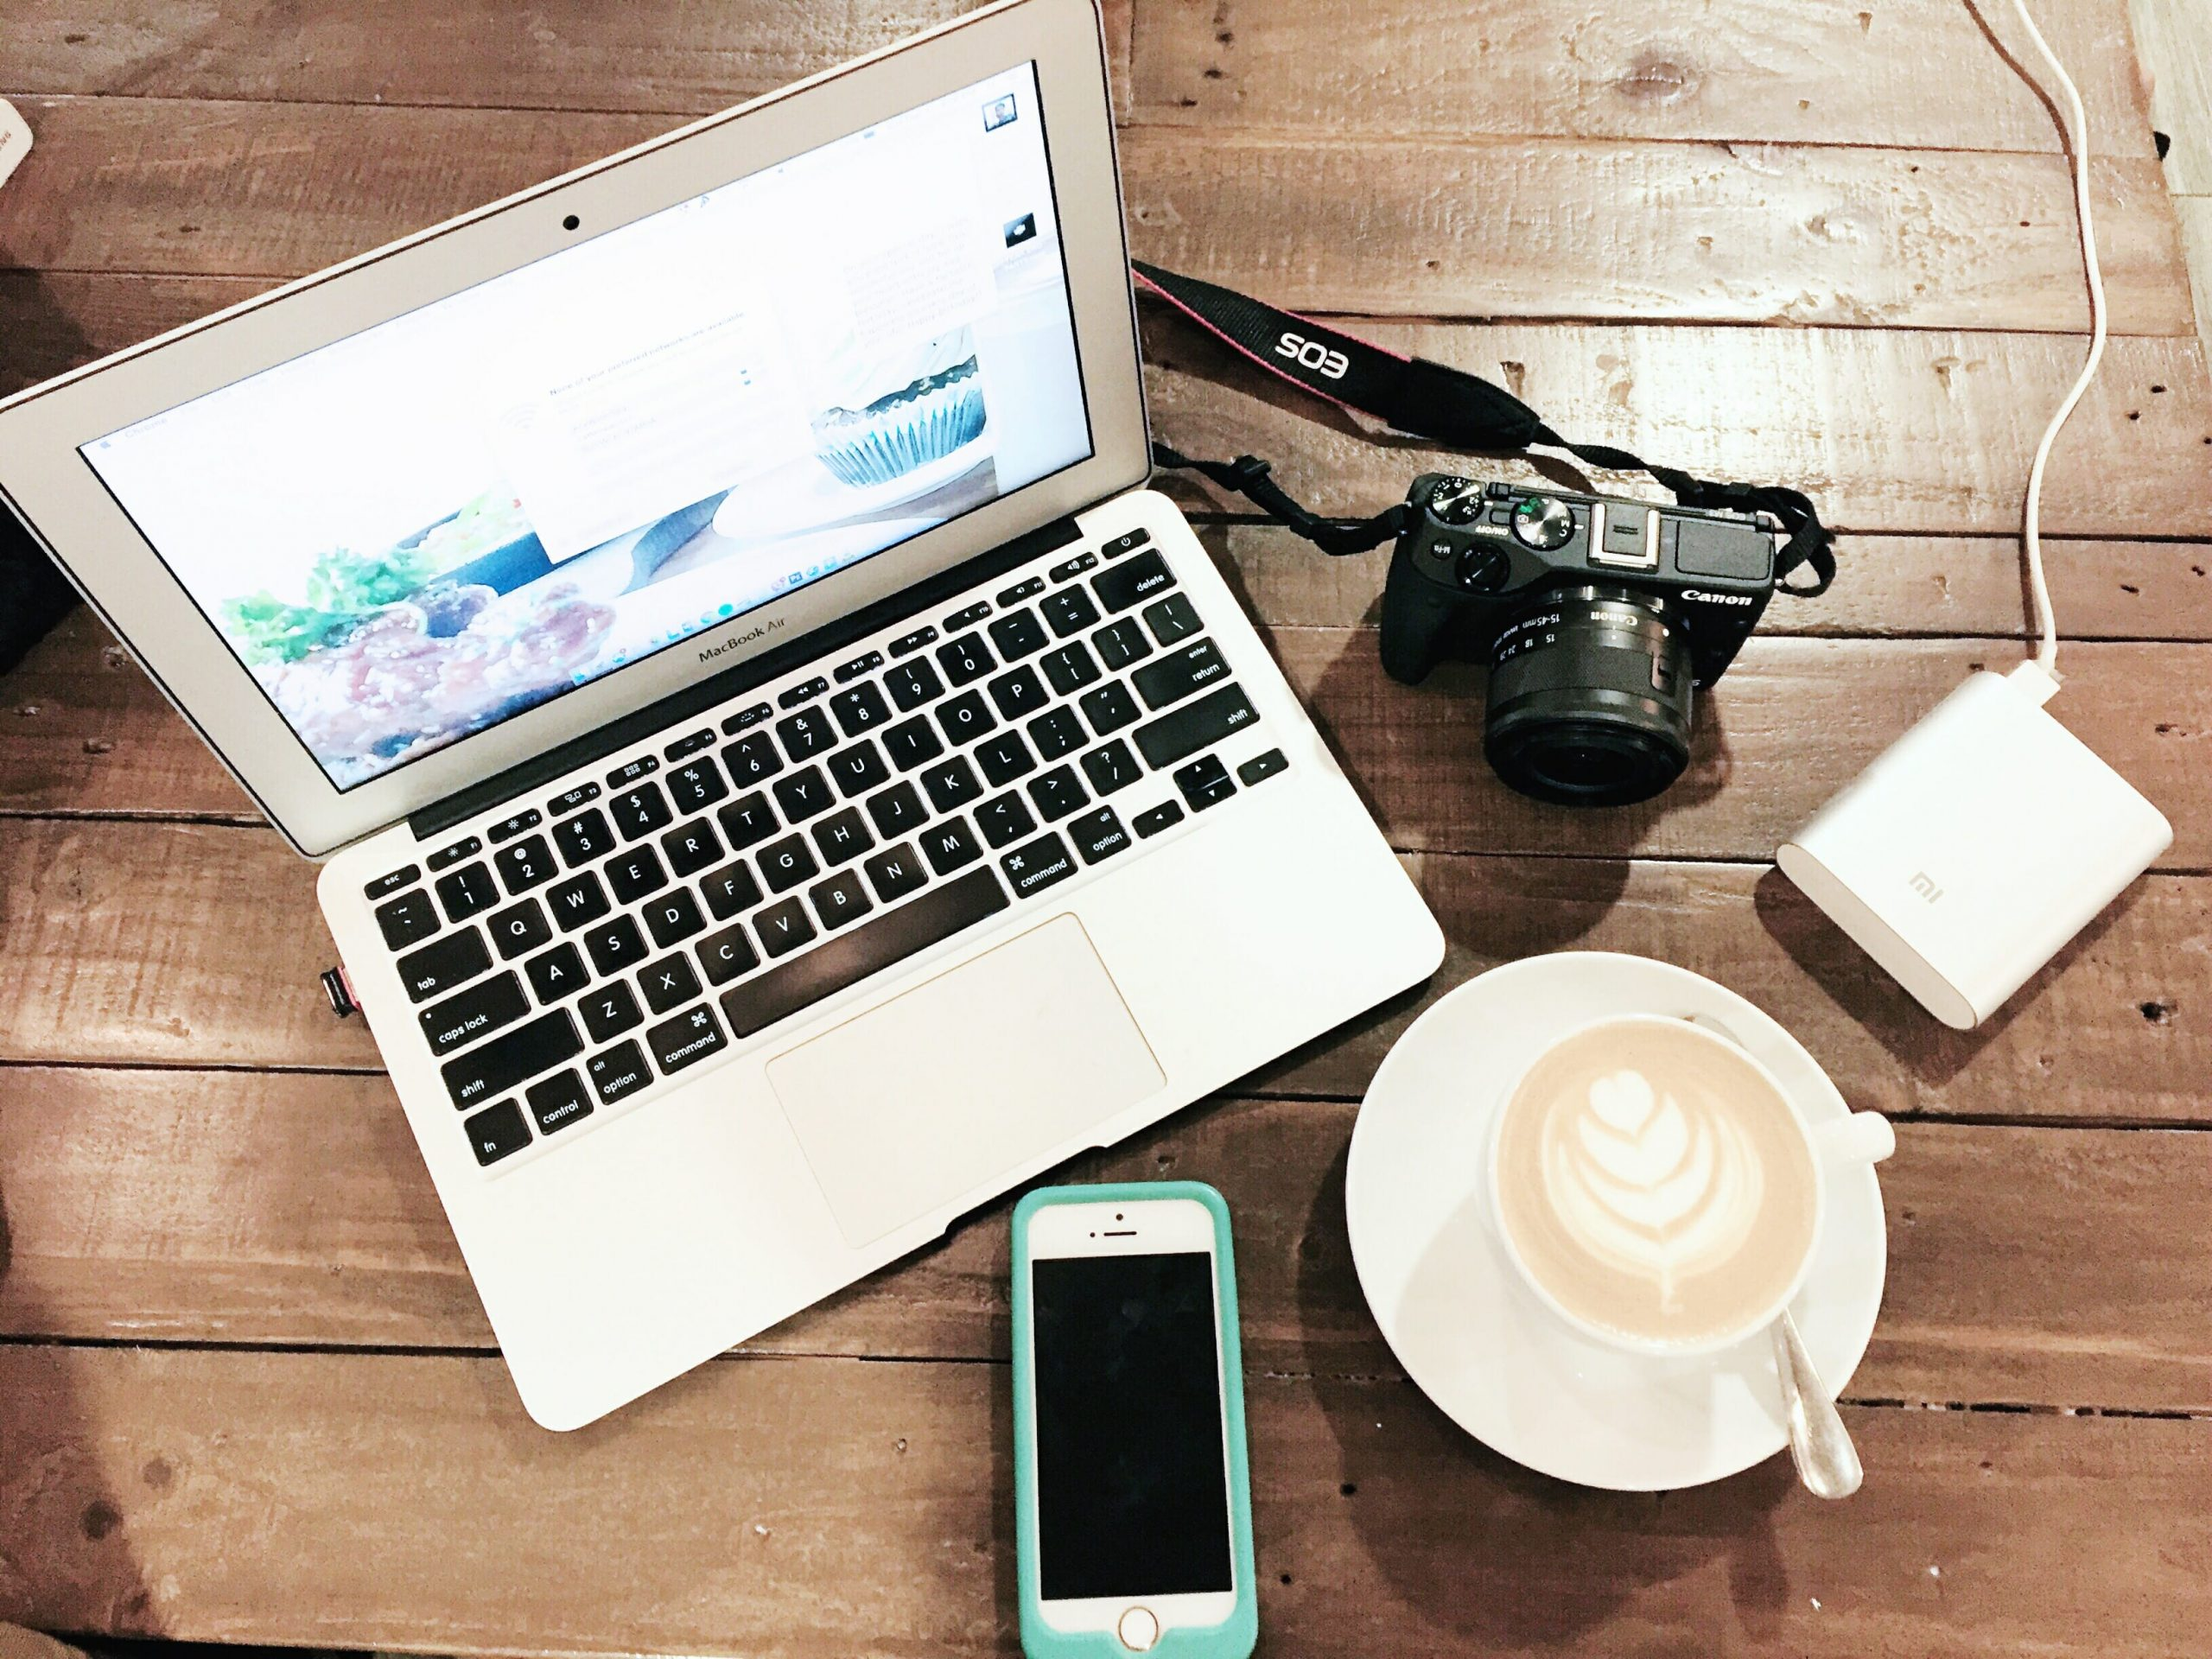 coffee-laptop-phone-camera-flatlay-coffeehan